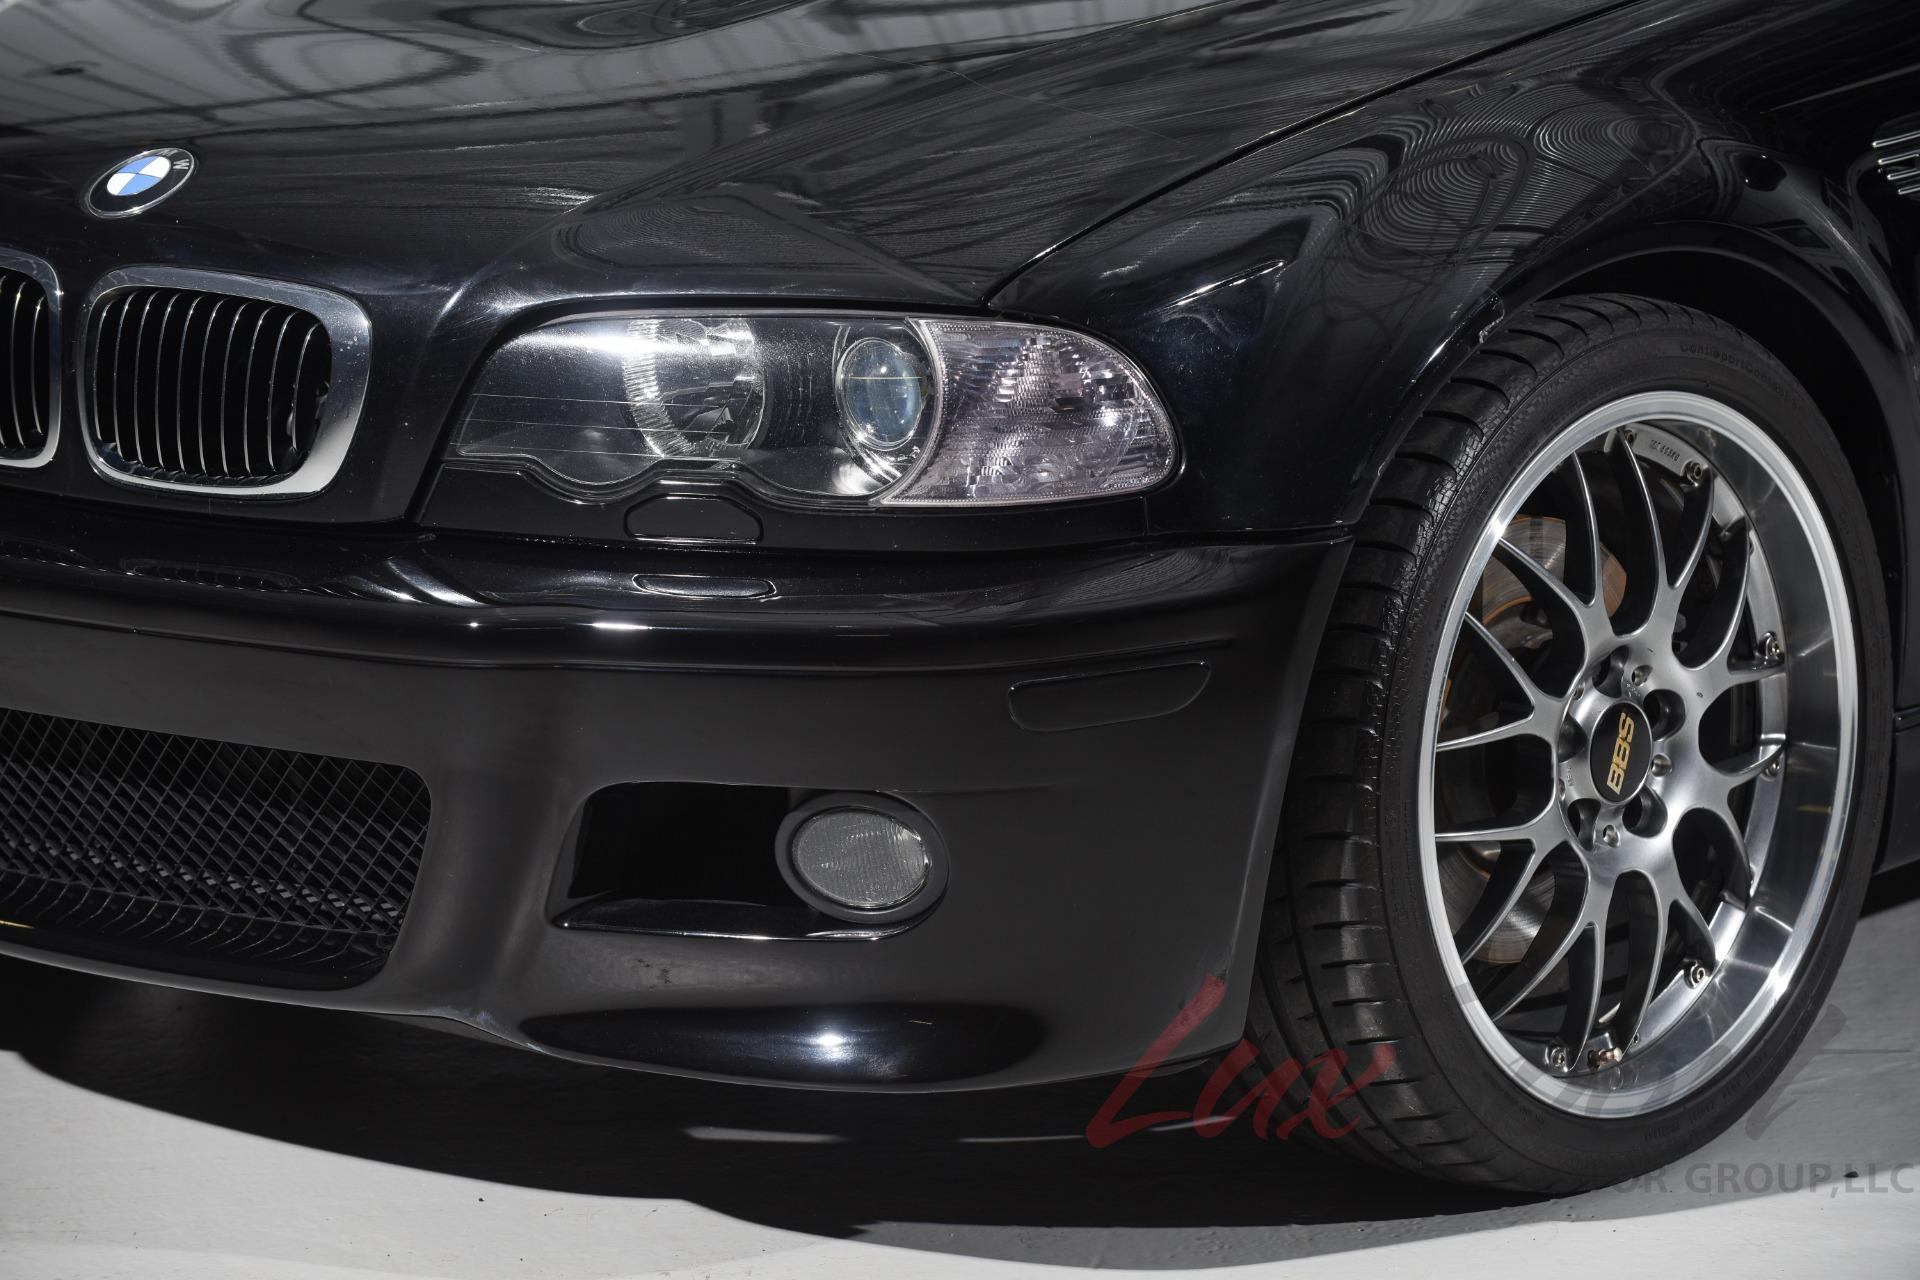 2004 Bmw E46 M3 Coupe Stock 2004123 For Sale Near Syosset Ny Ny Bmw Dealer